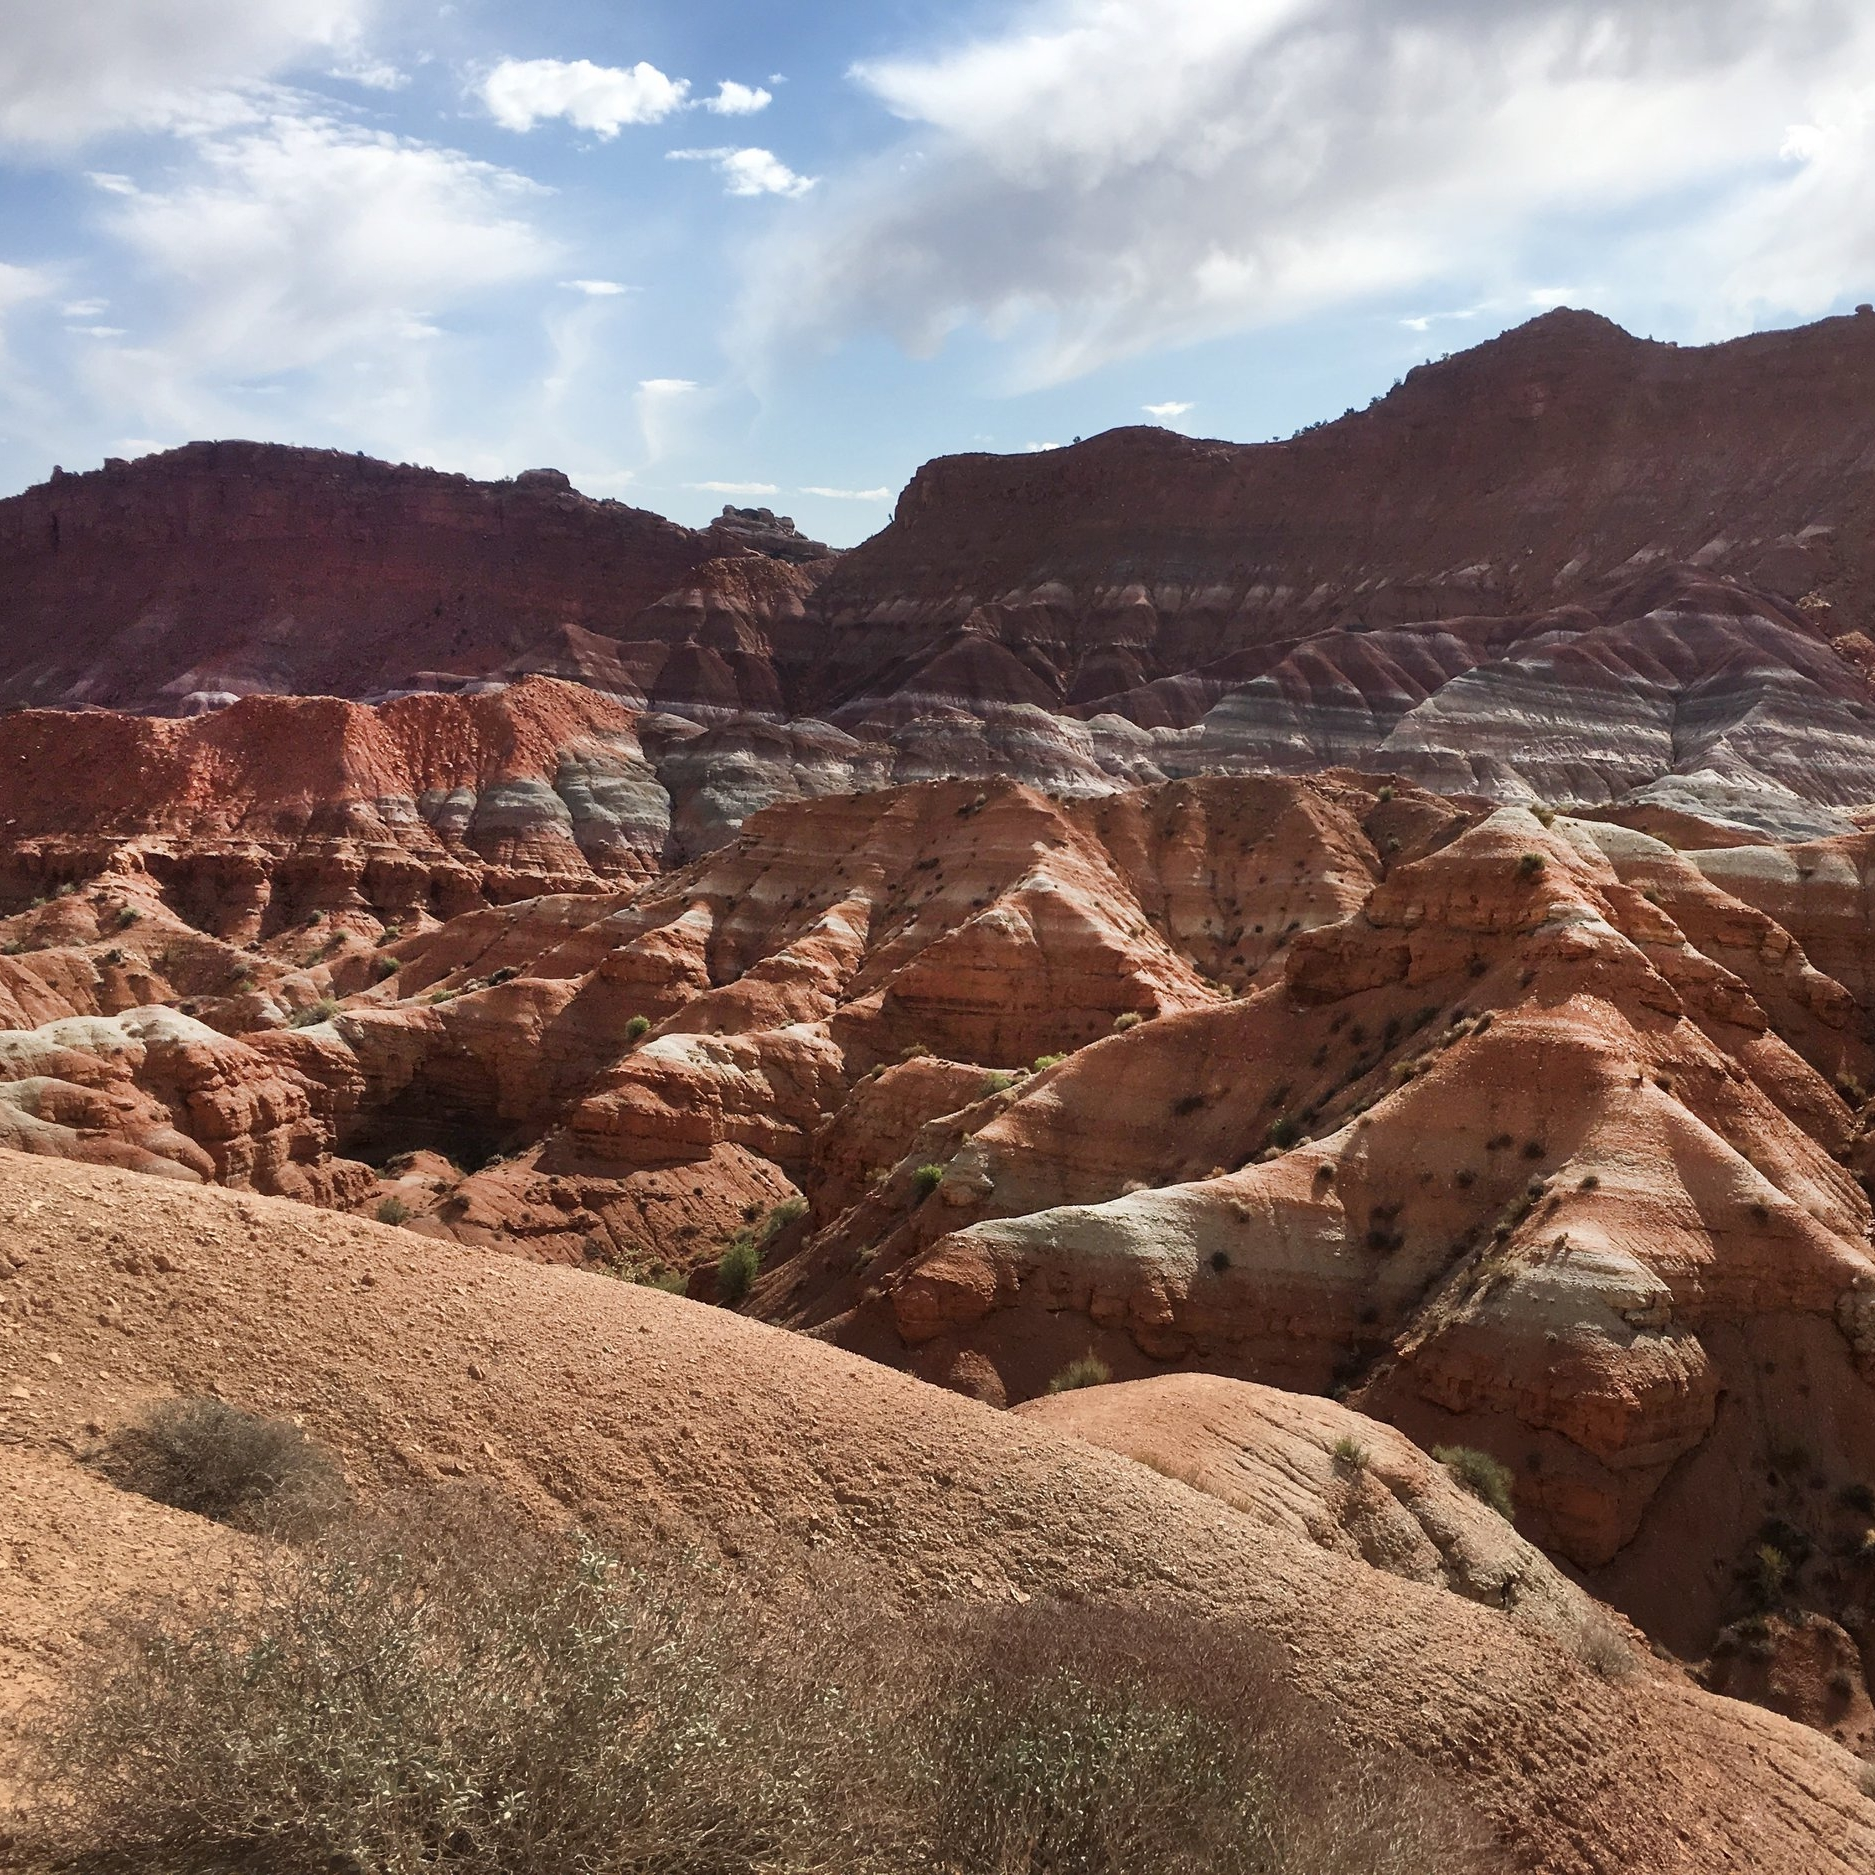 Sitting in the painted desert is the Paria Ghost Town.